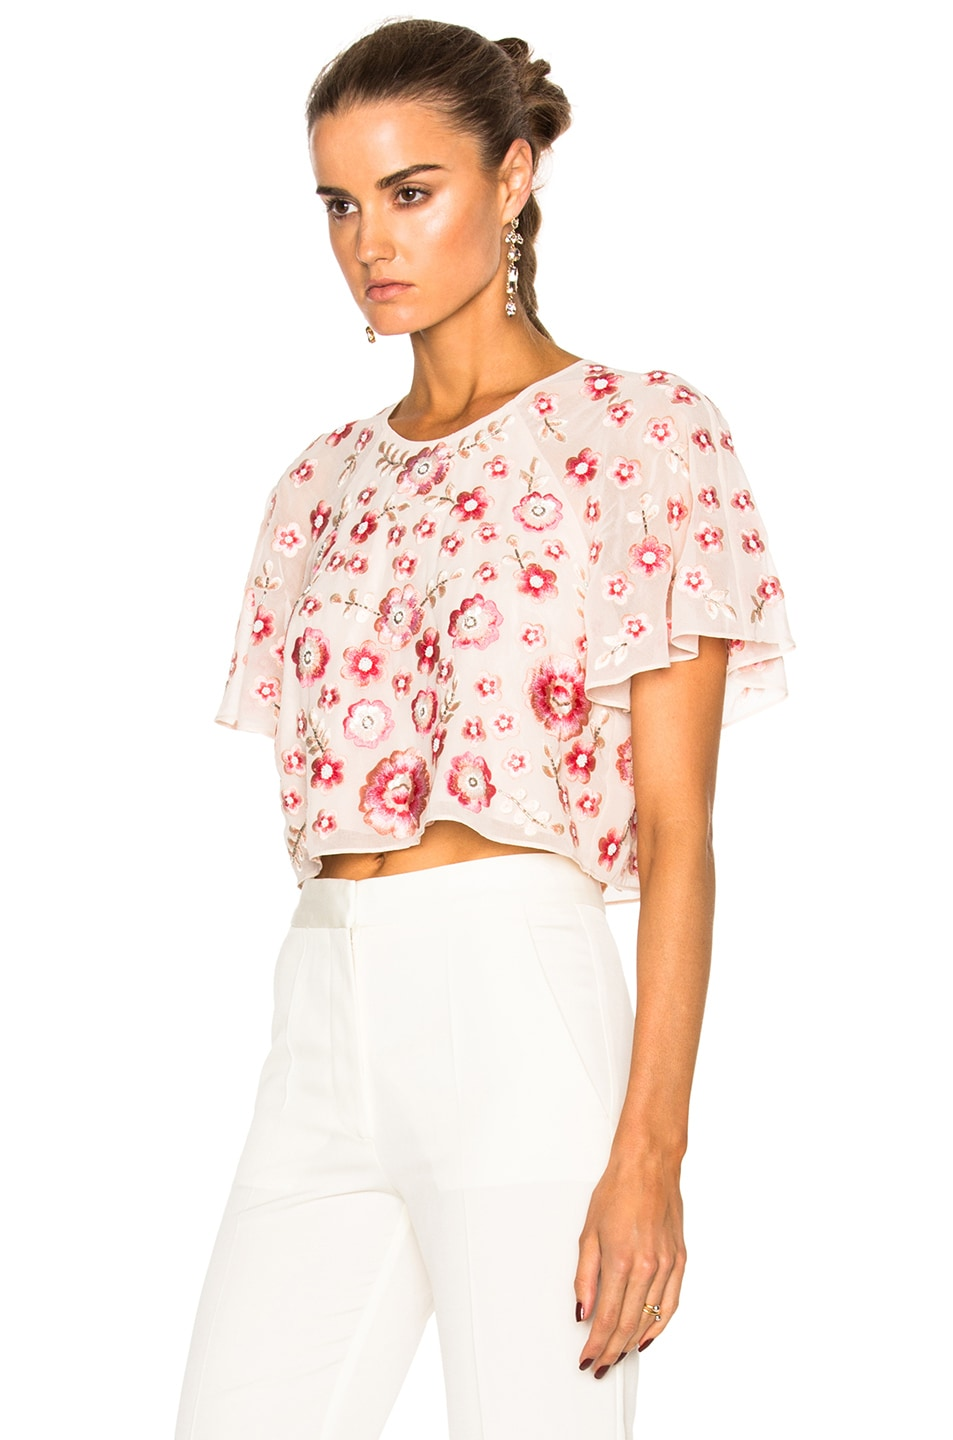 NEEDLE U0026 THREAD Cherry Blossom Embroidered Blouse In Petal Pink | ModeSens